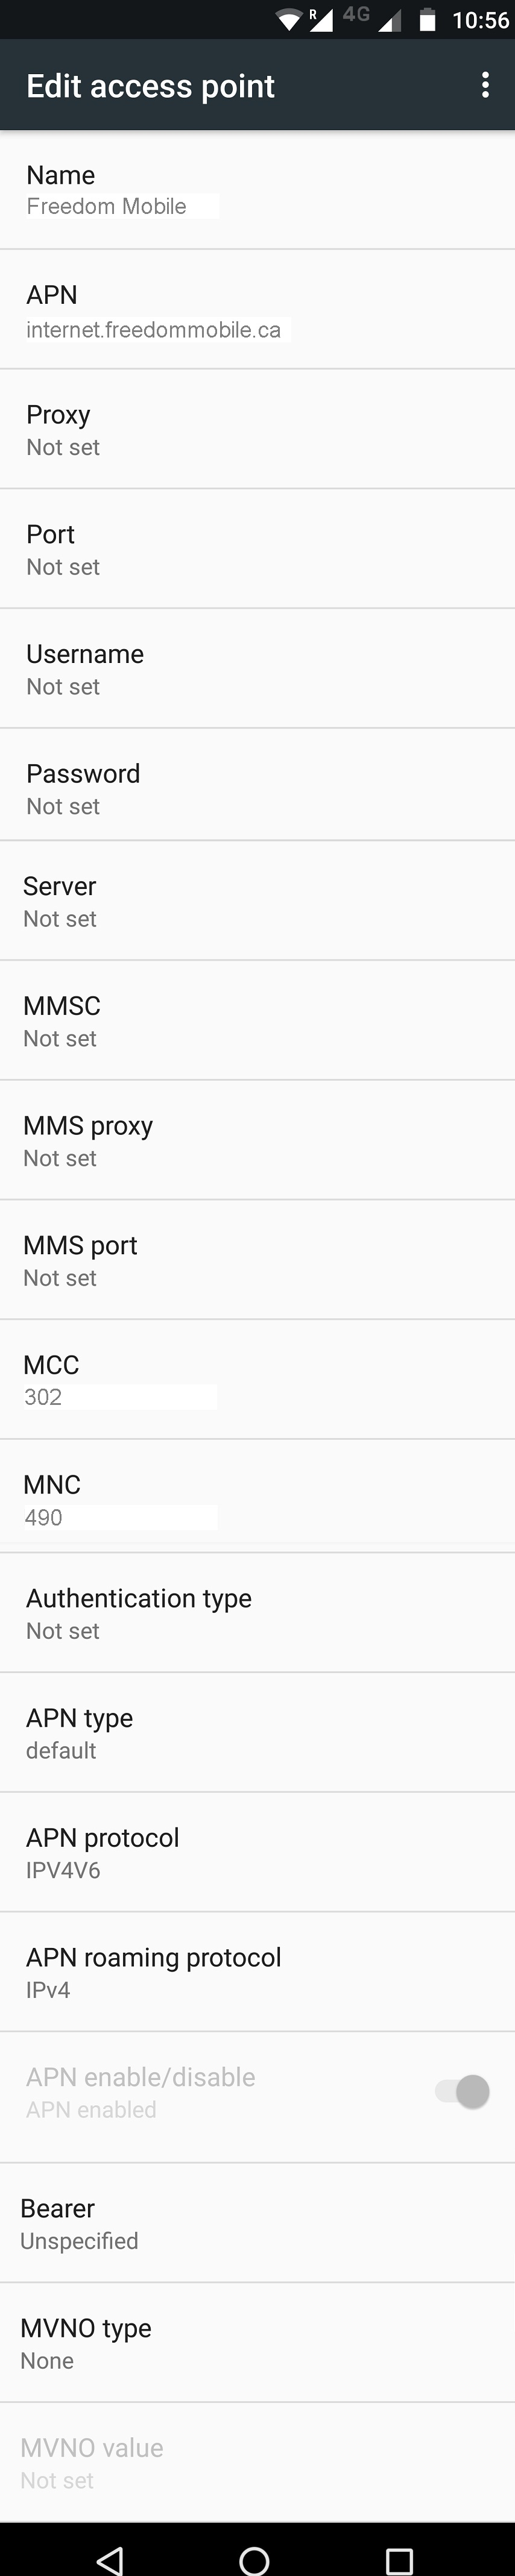 Freedom Mobile LTE APN Settings for Android